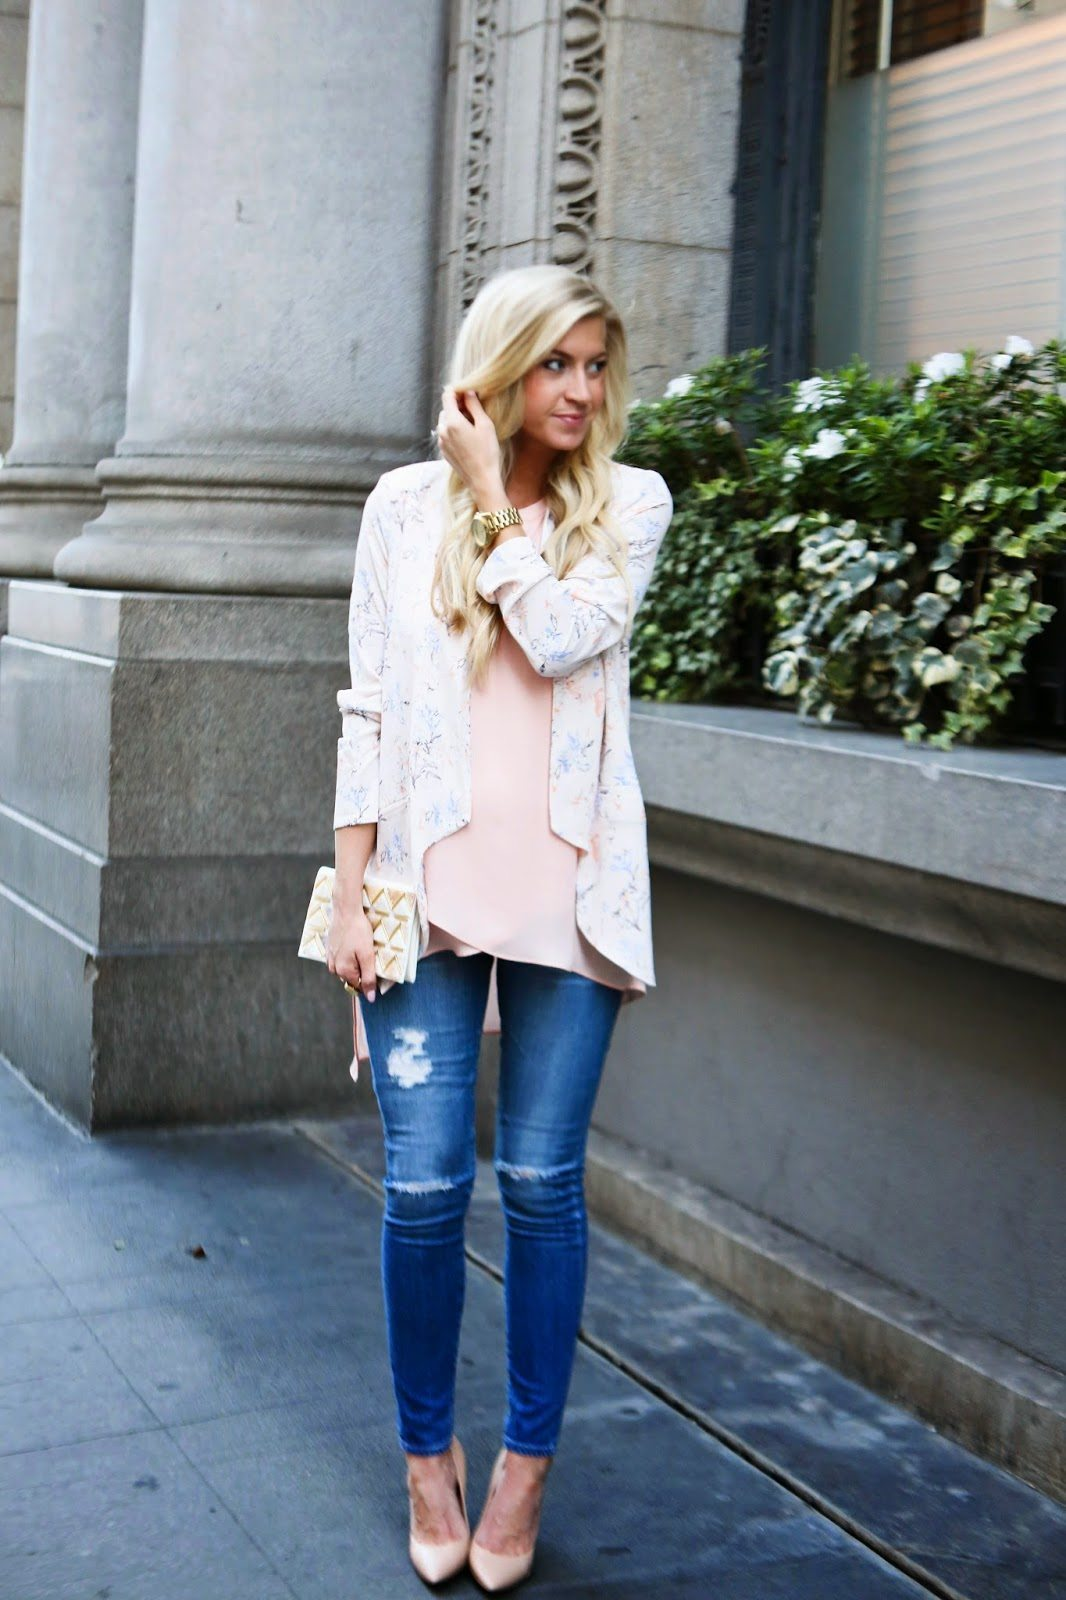 BUMP STYLE BREAKDOWN: DISTRESSED DENIM